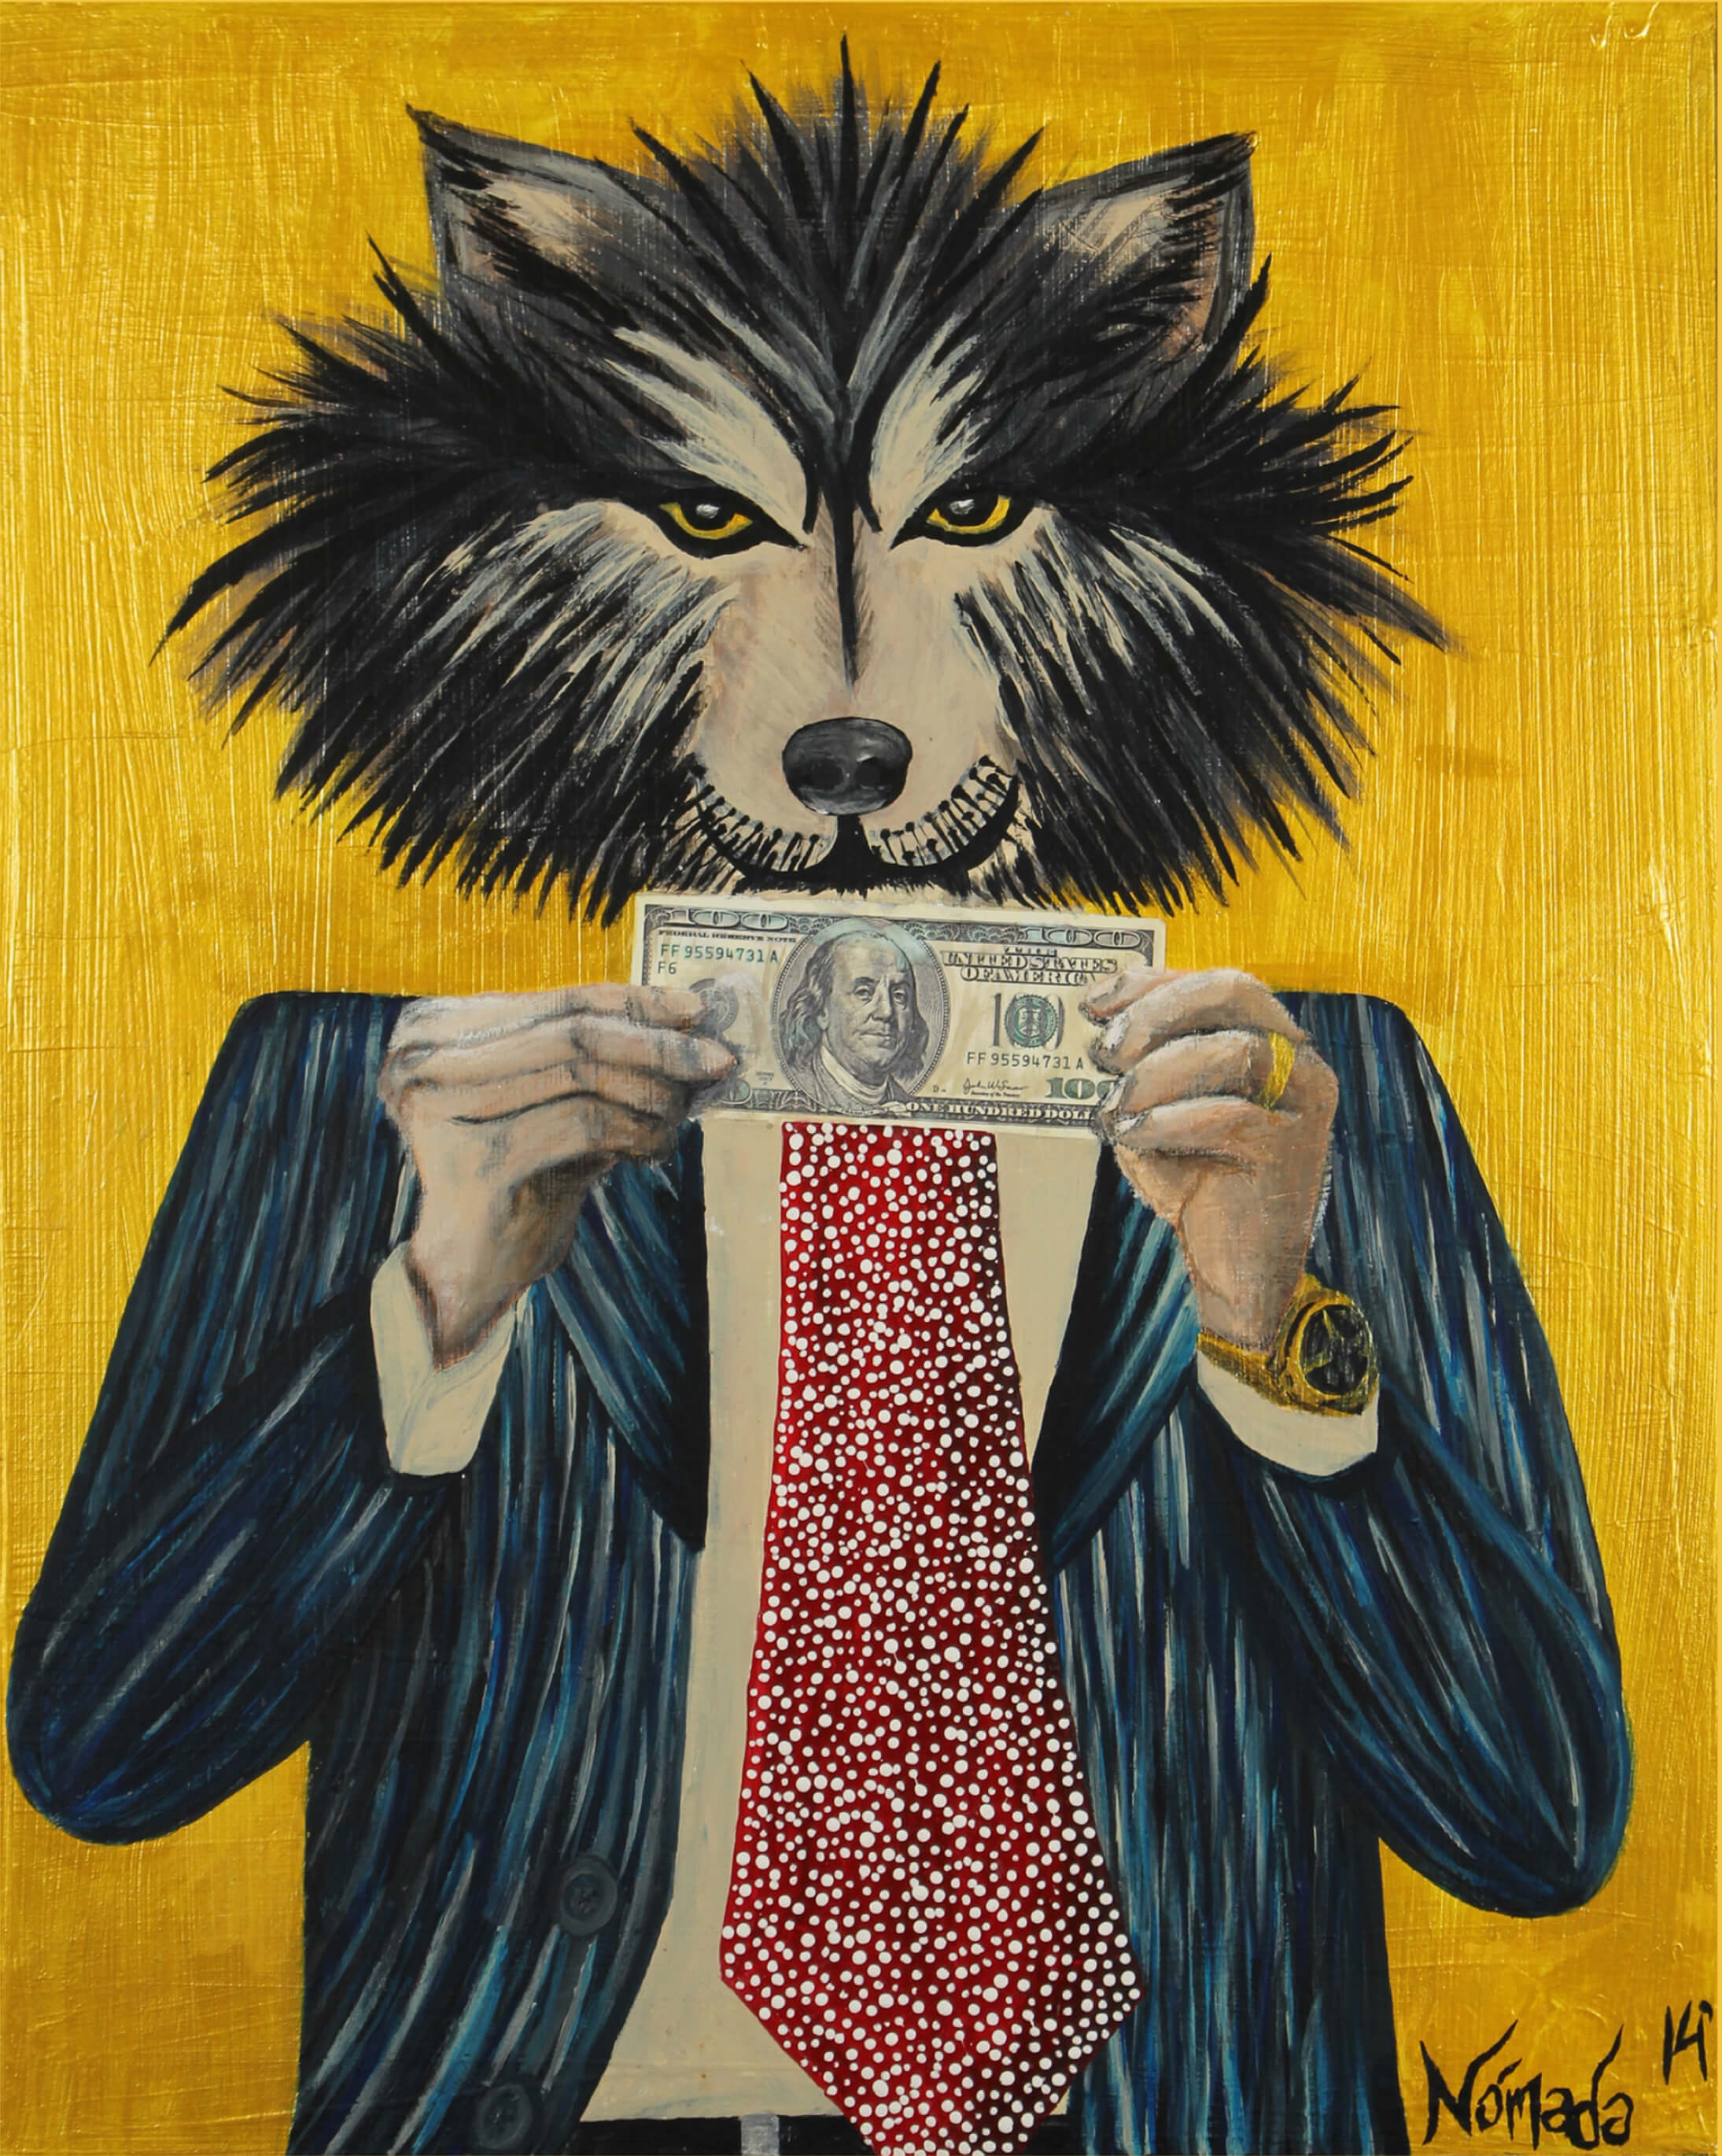 Print of wolf's upper body with business suit and tie holding a hundred dollar bill with two hands in front of his chest by Nómada